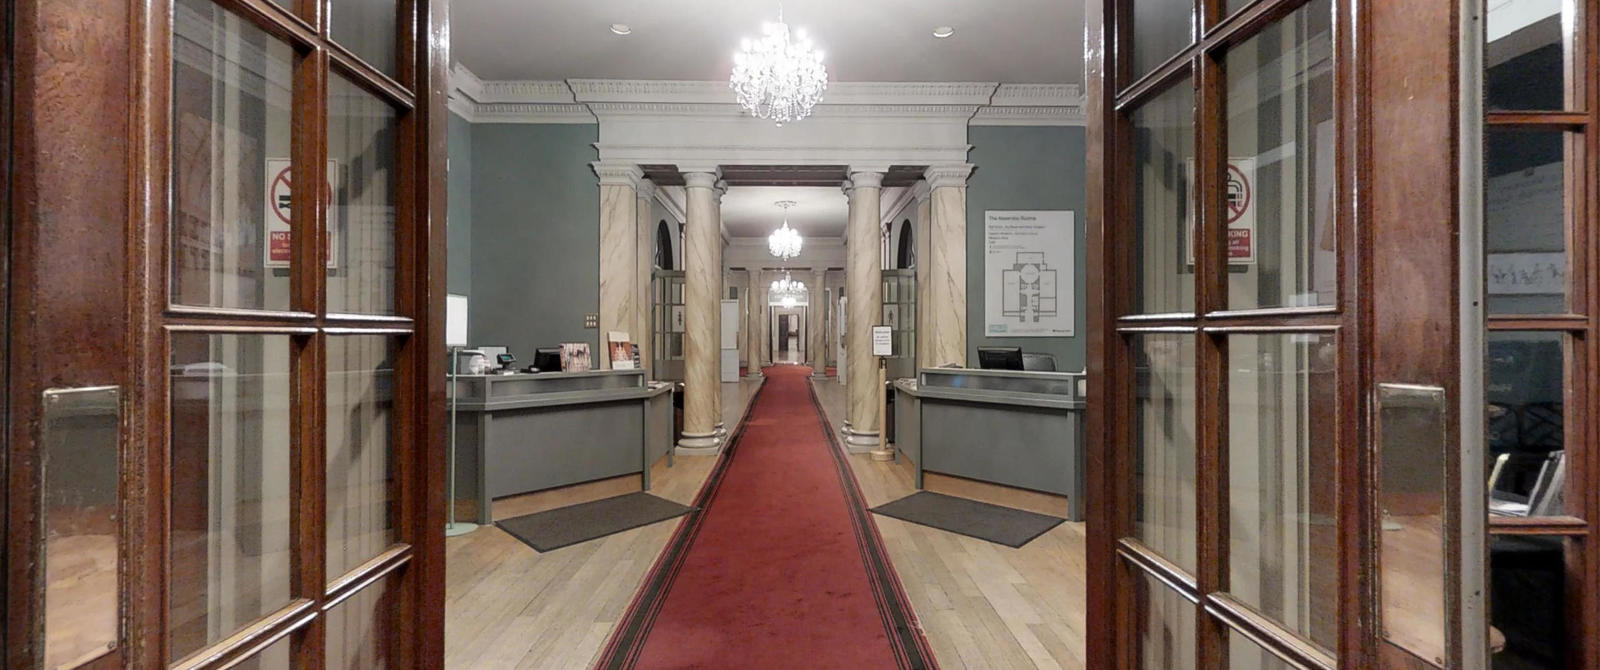 Image: Entrance to the Assembly Rooms